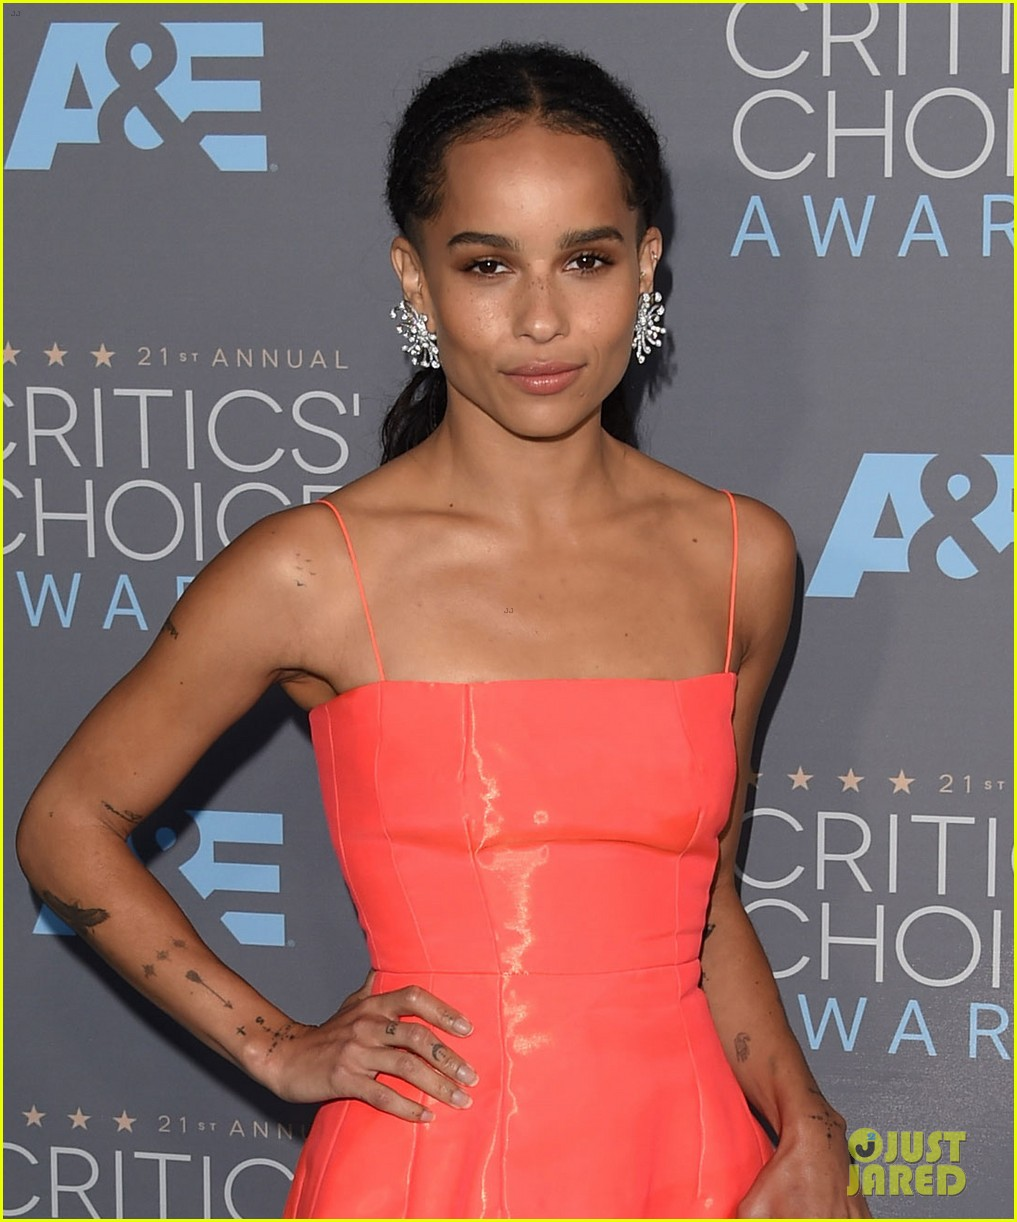 http://cdn03.cdn.justjared.com/wp-content/uploads/2016/01/kravitz-critics/zoe-kravitz-boyfriend-twin-shaddow-critics-choice-awards-2016-05.jpg